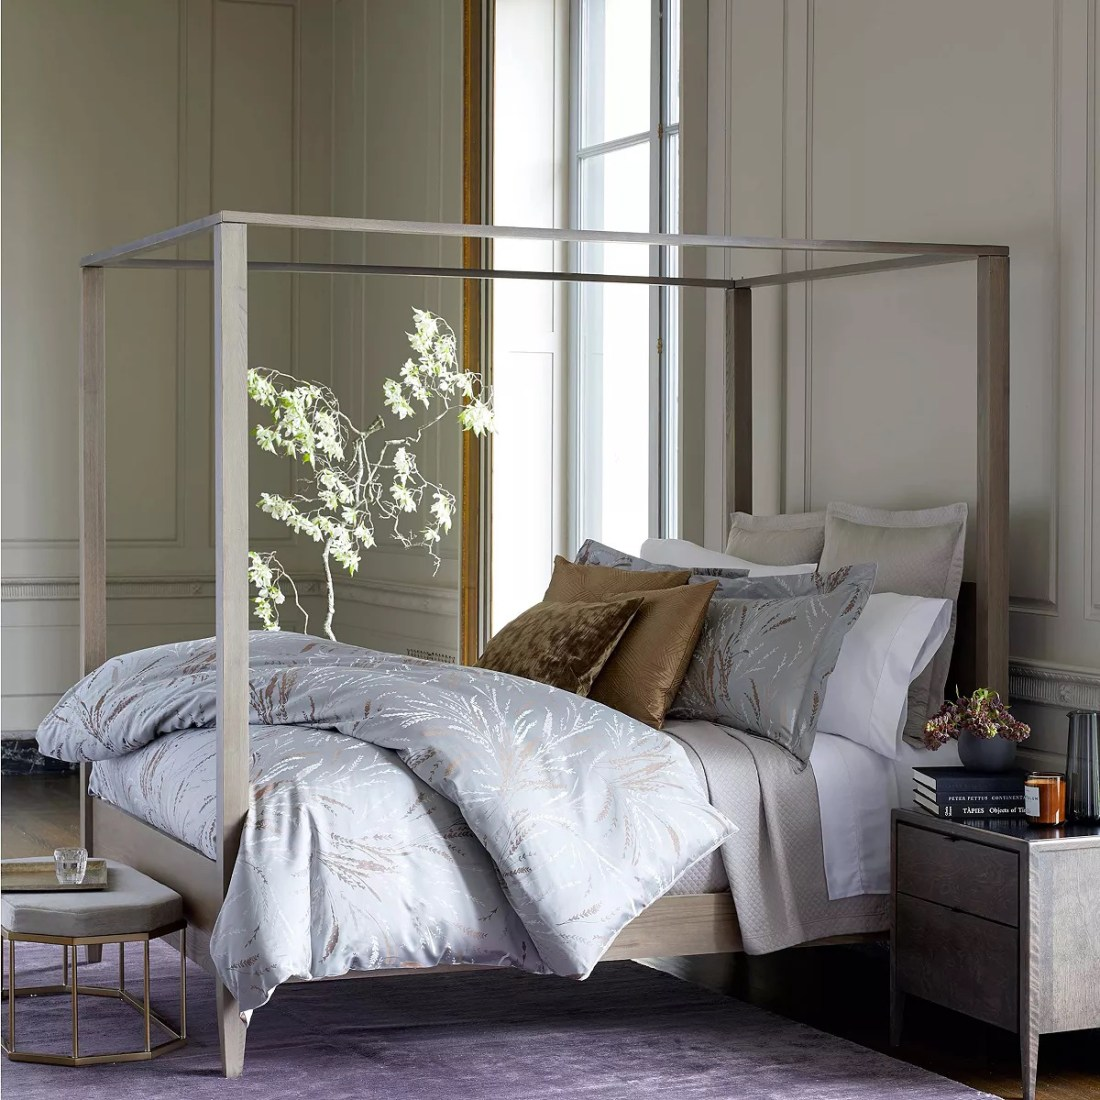 Frette Flourish Arredo Designer Luxury Bedding